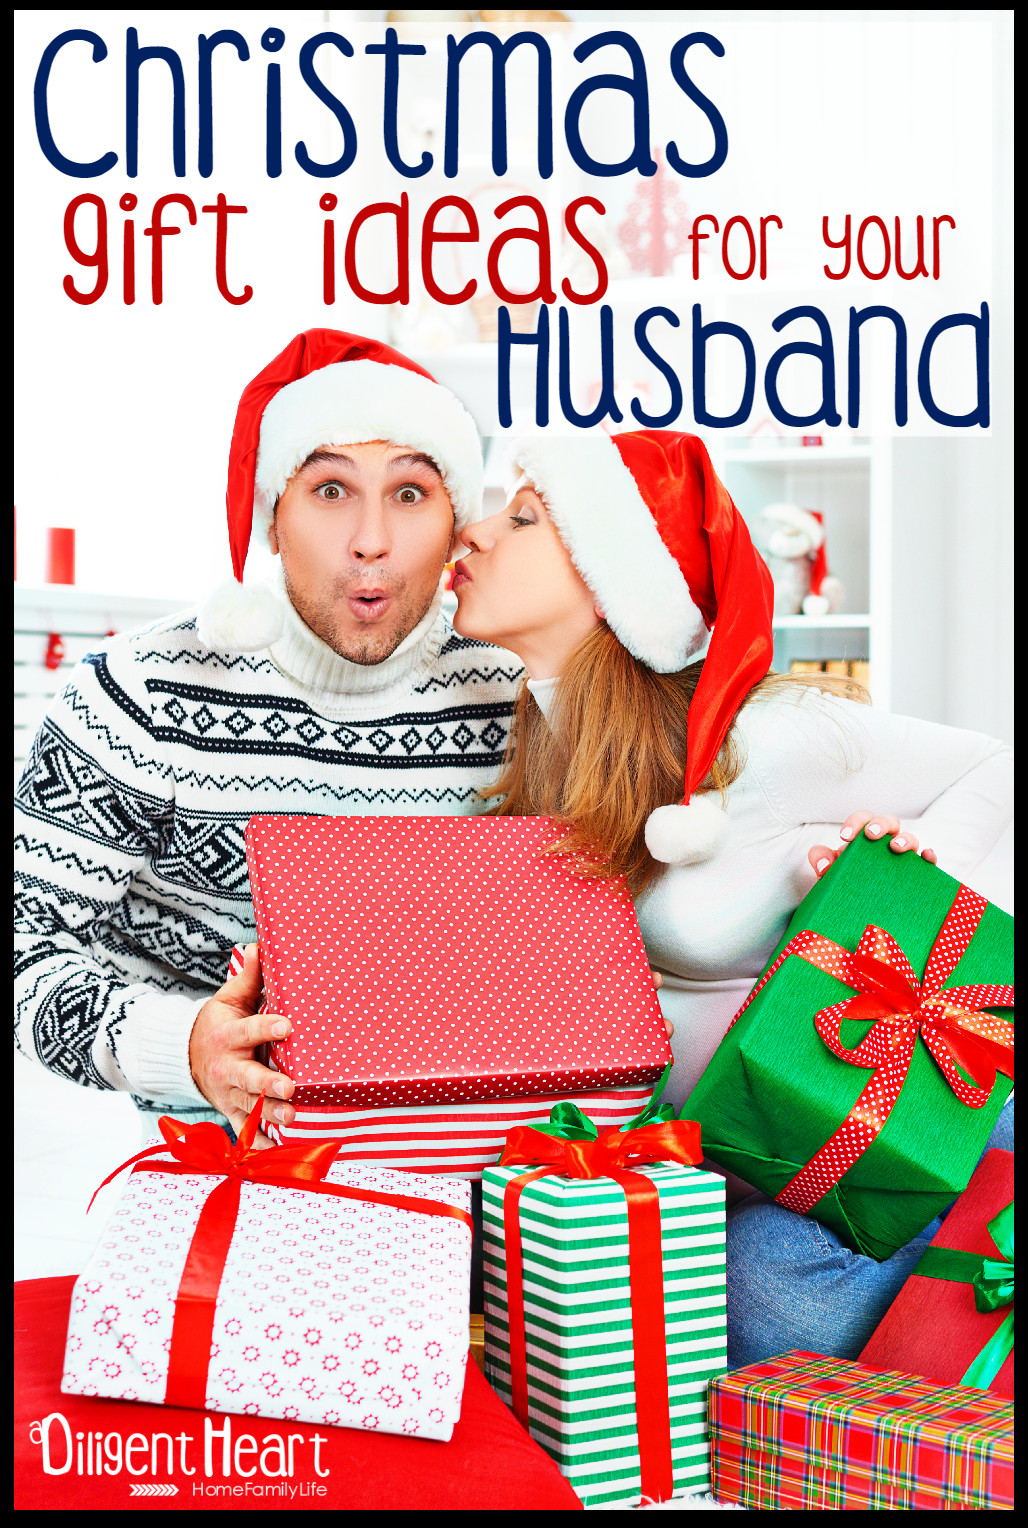 Best ideas about DIY Christmas Gift For Husband . Save or Pin Christmas Gift Ideas For Your Husband Now.